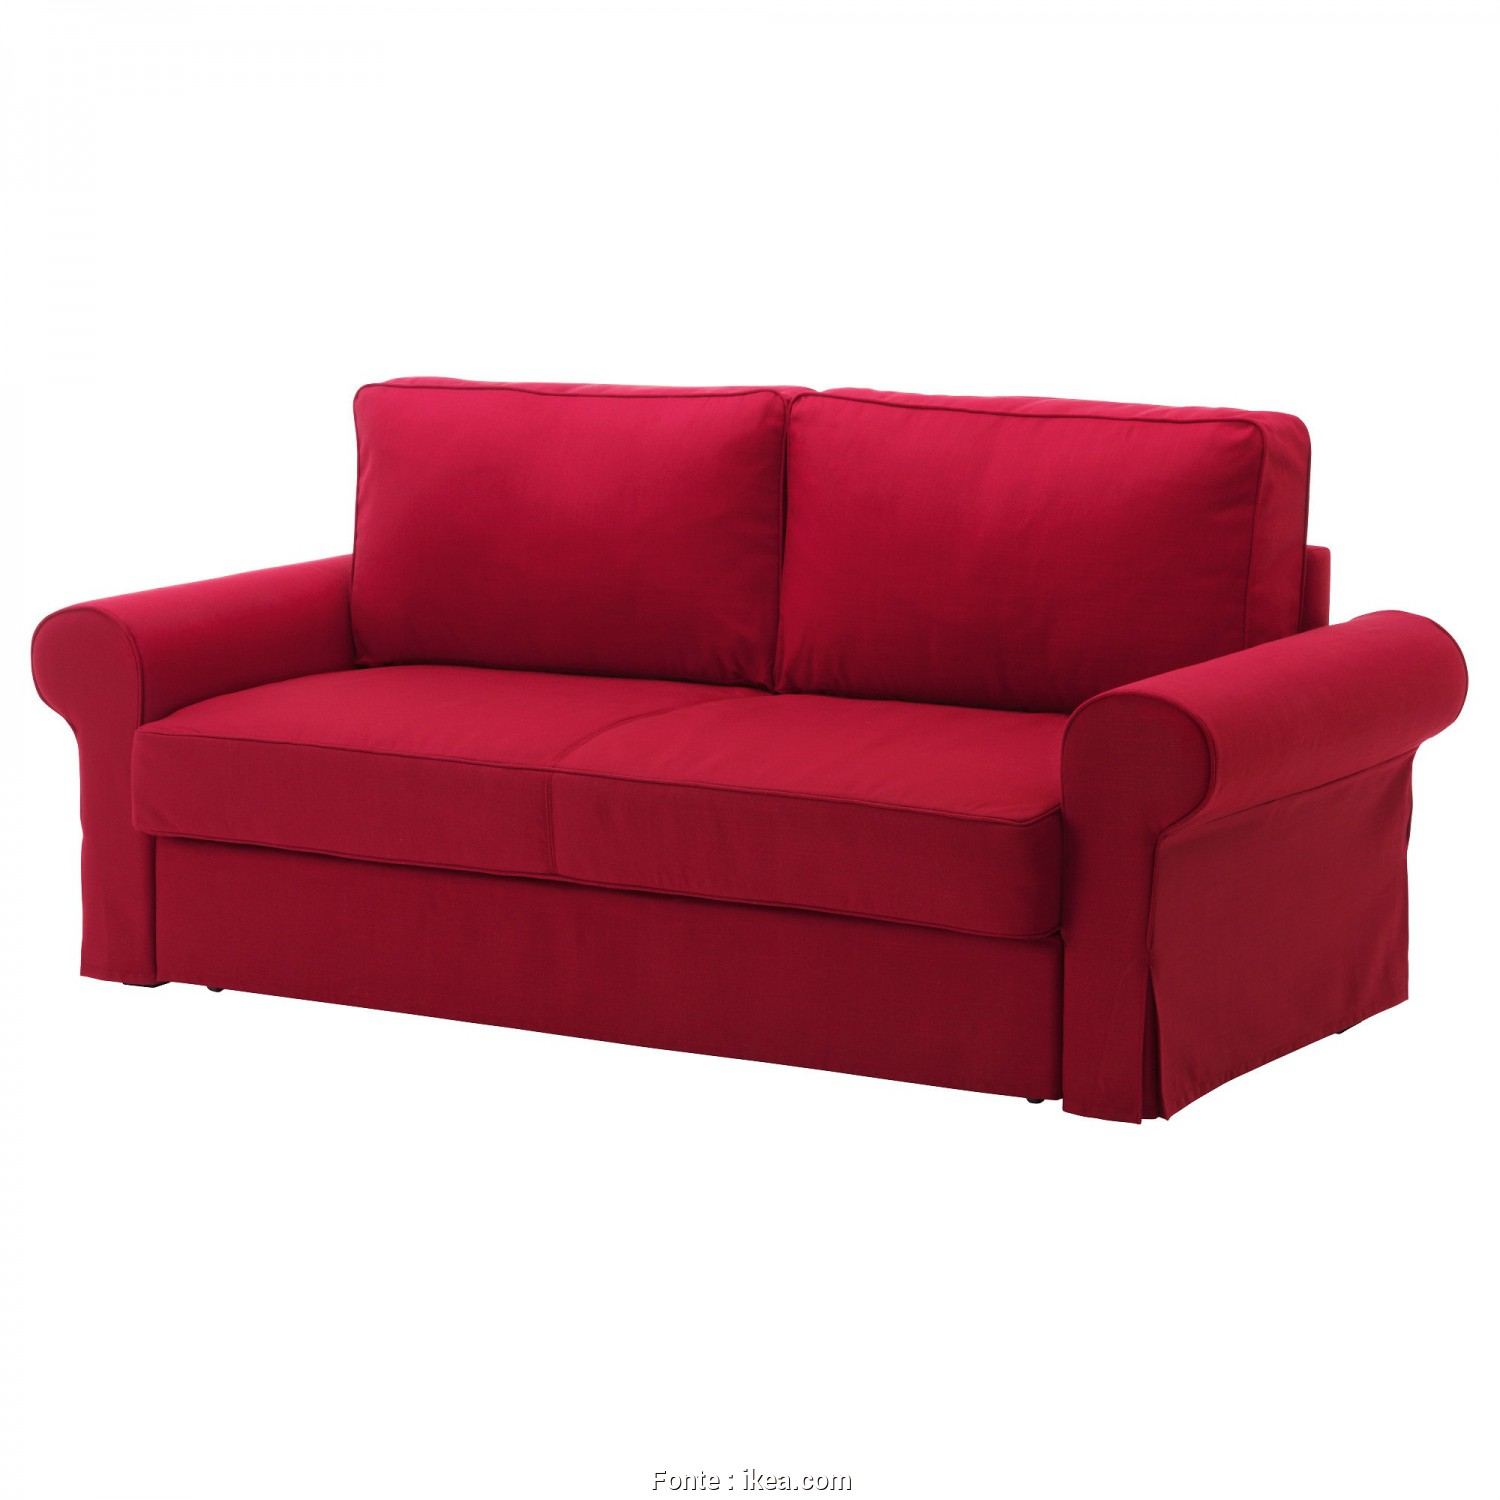 Canape Ikea Backabro 3 Places, Rustico BACKABRO Convertible 3 Places Nordvalla Rouge